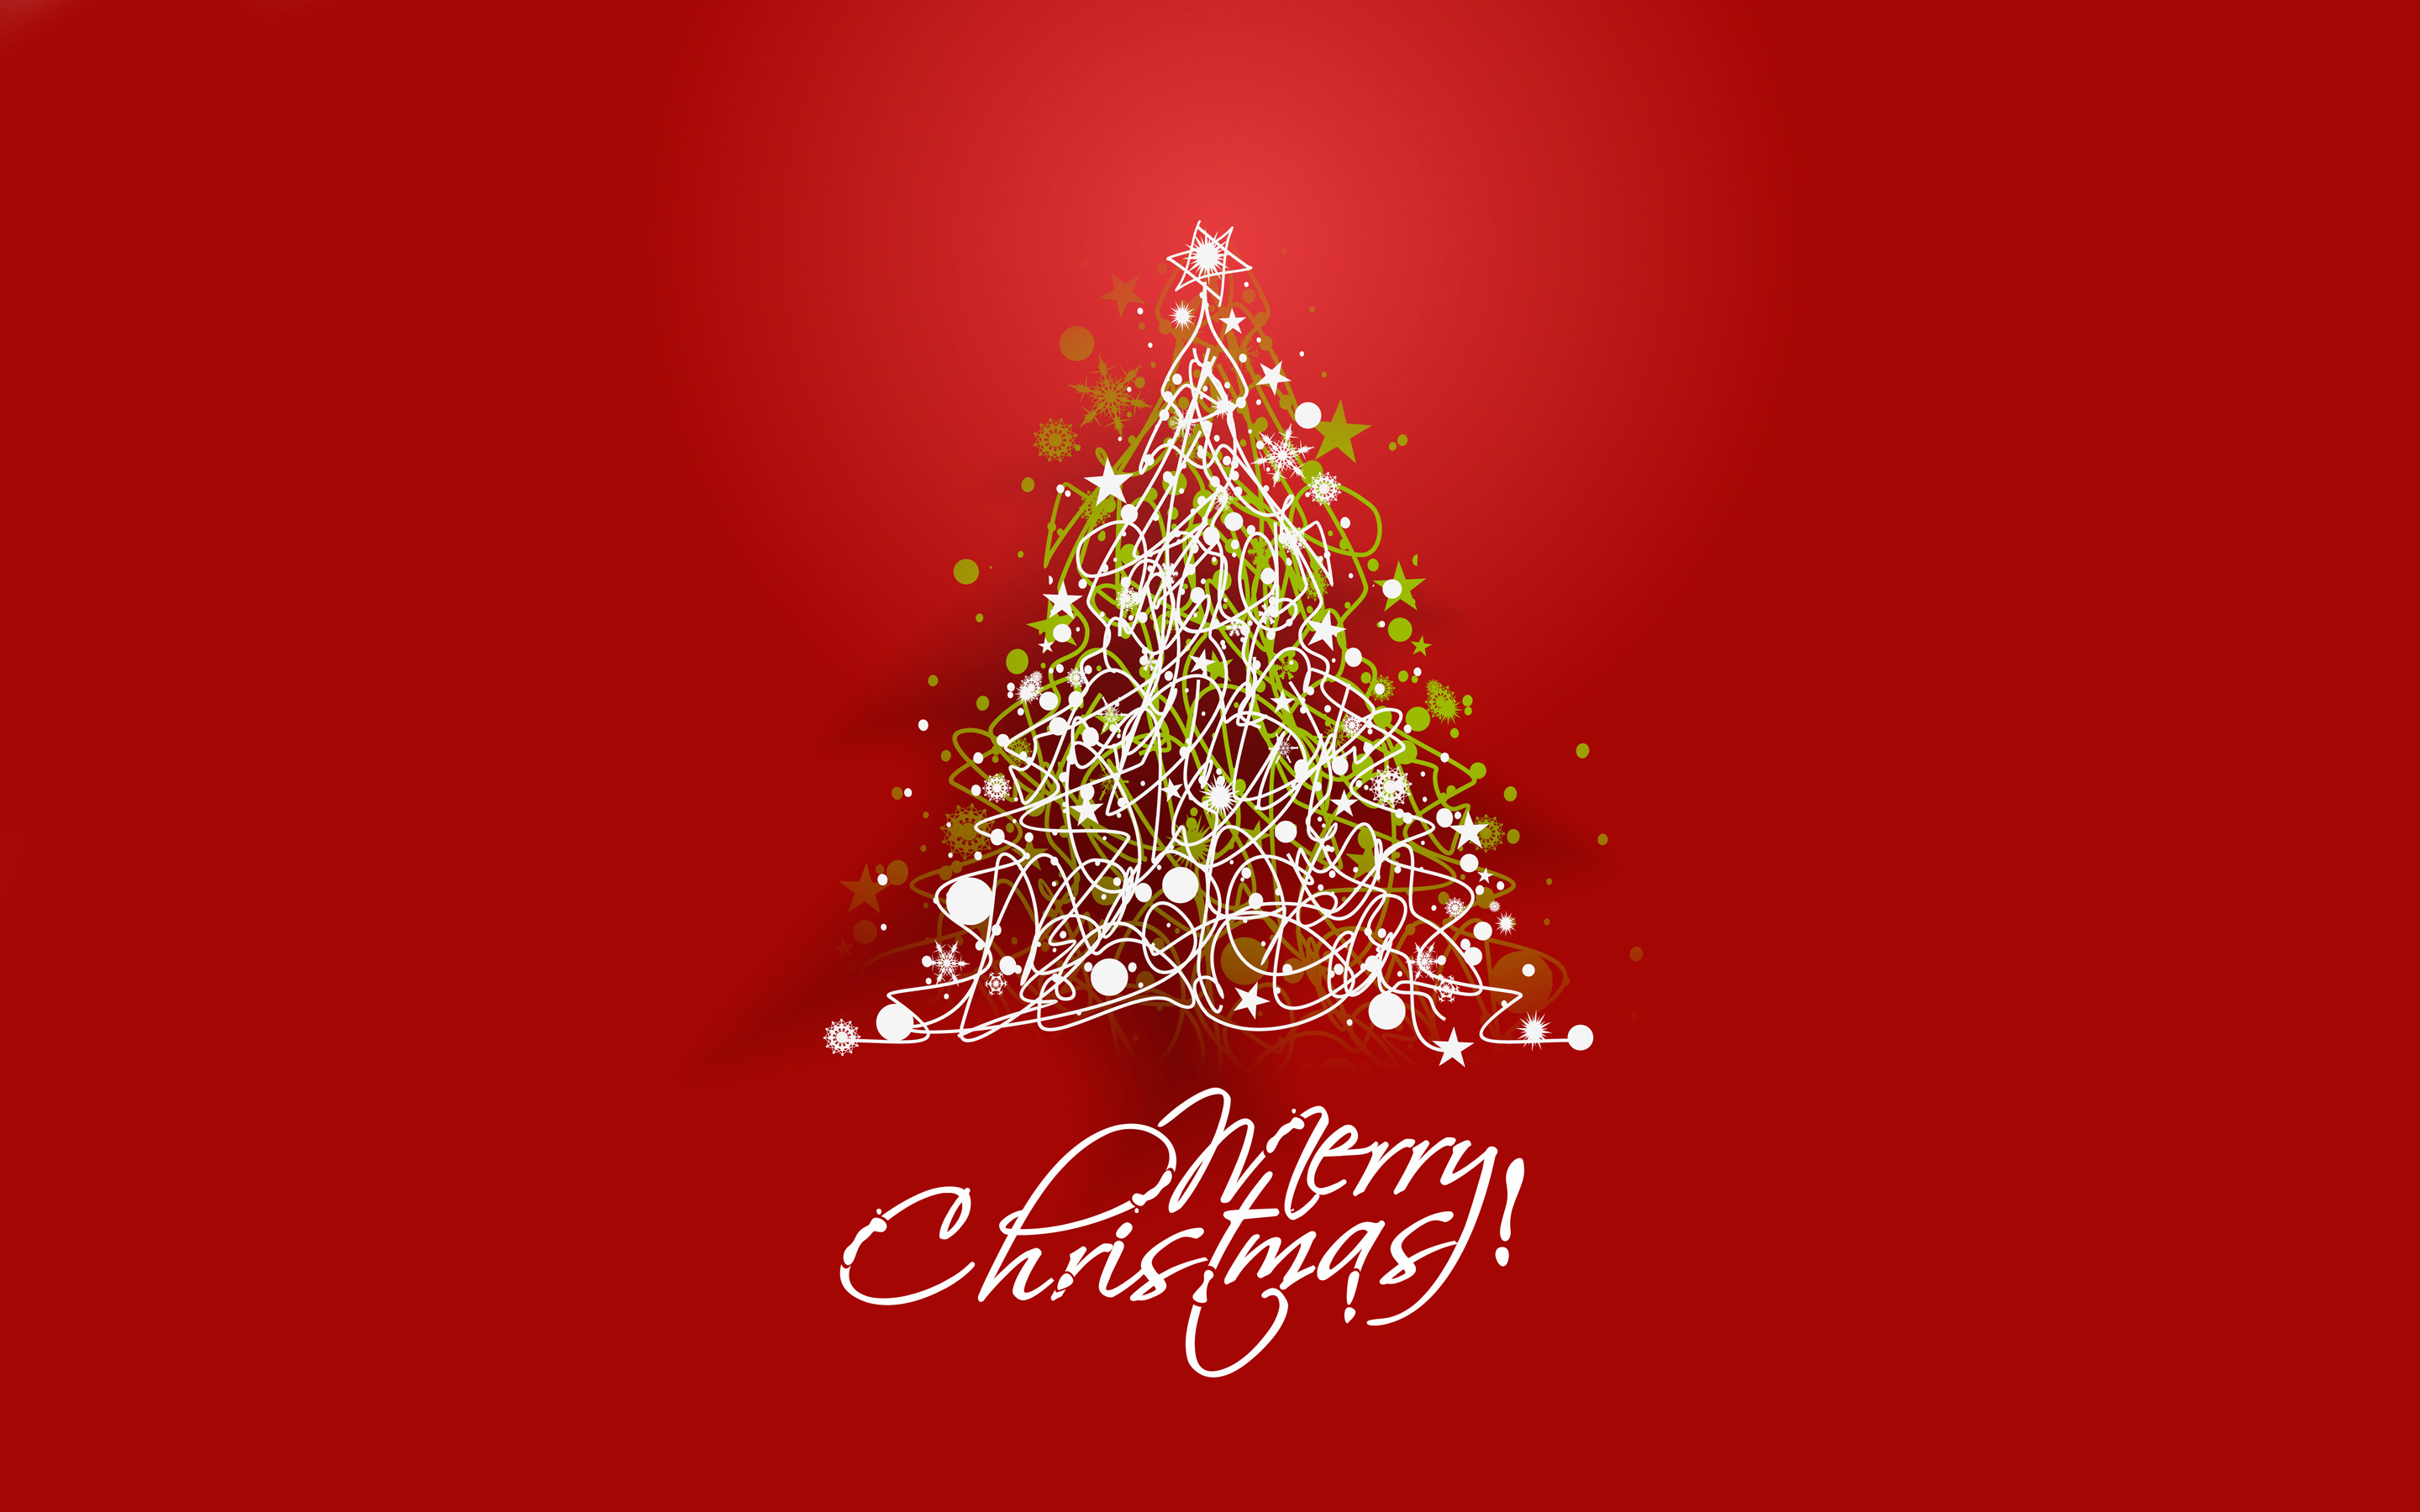 HD Merry Christmas 2017 Wallpapers | Images for Merry Christmas 2017